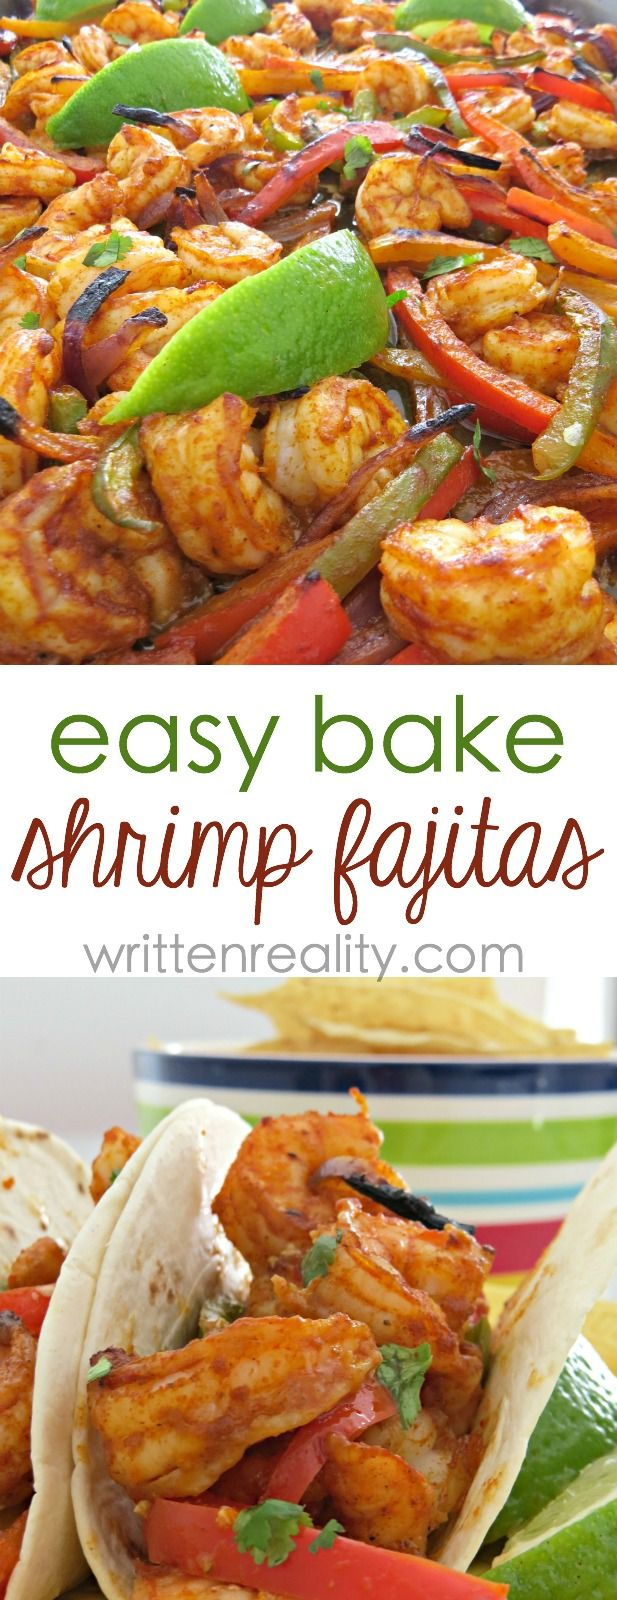 One Sheet Pan Shrimp Fajitas : Here's an easy sheet pan shrimp fajitas recipe that's quick and delicious. Toss vegetables and shrimp in seasonings and bake on one pan. (Mexican Recipes Fajitas)